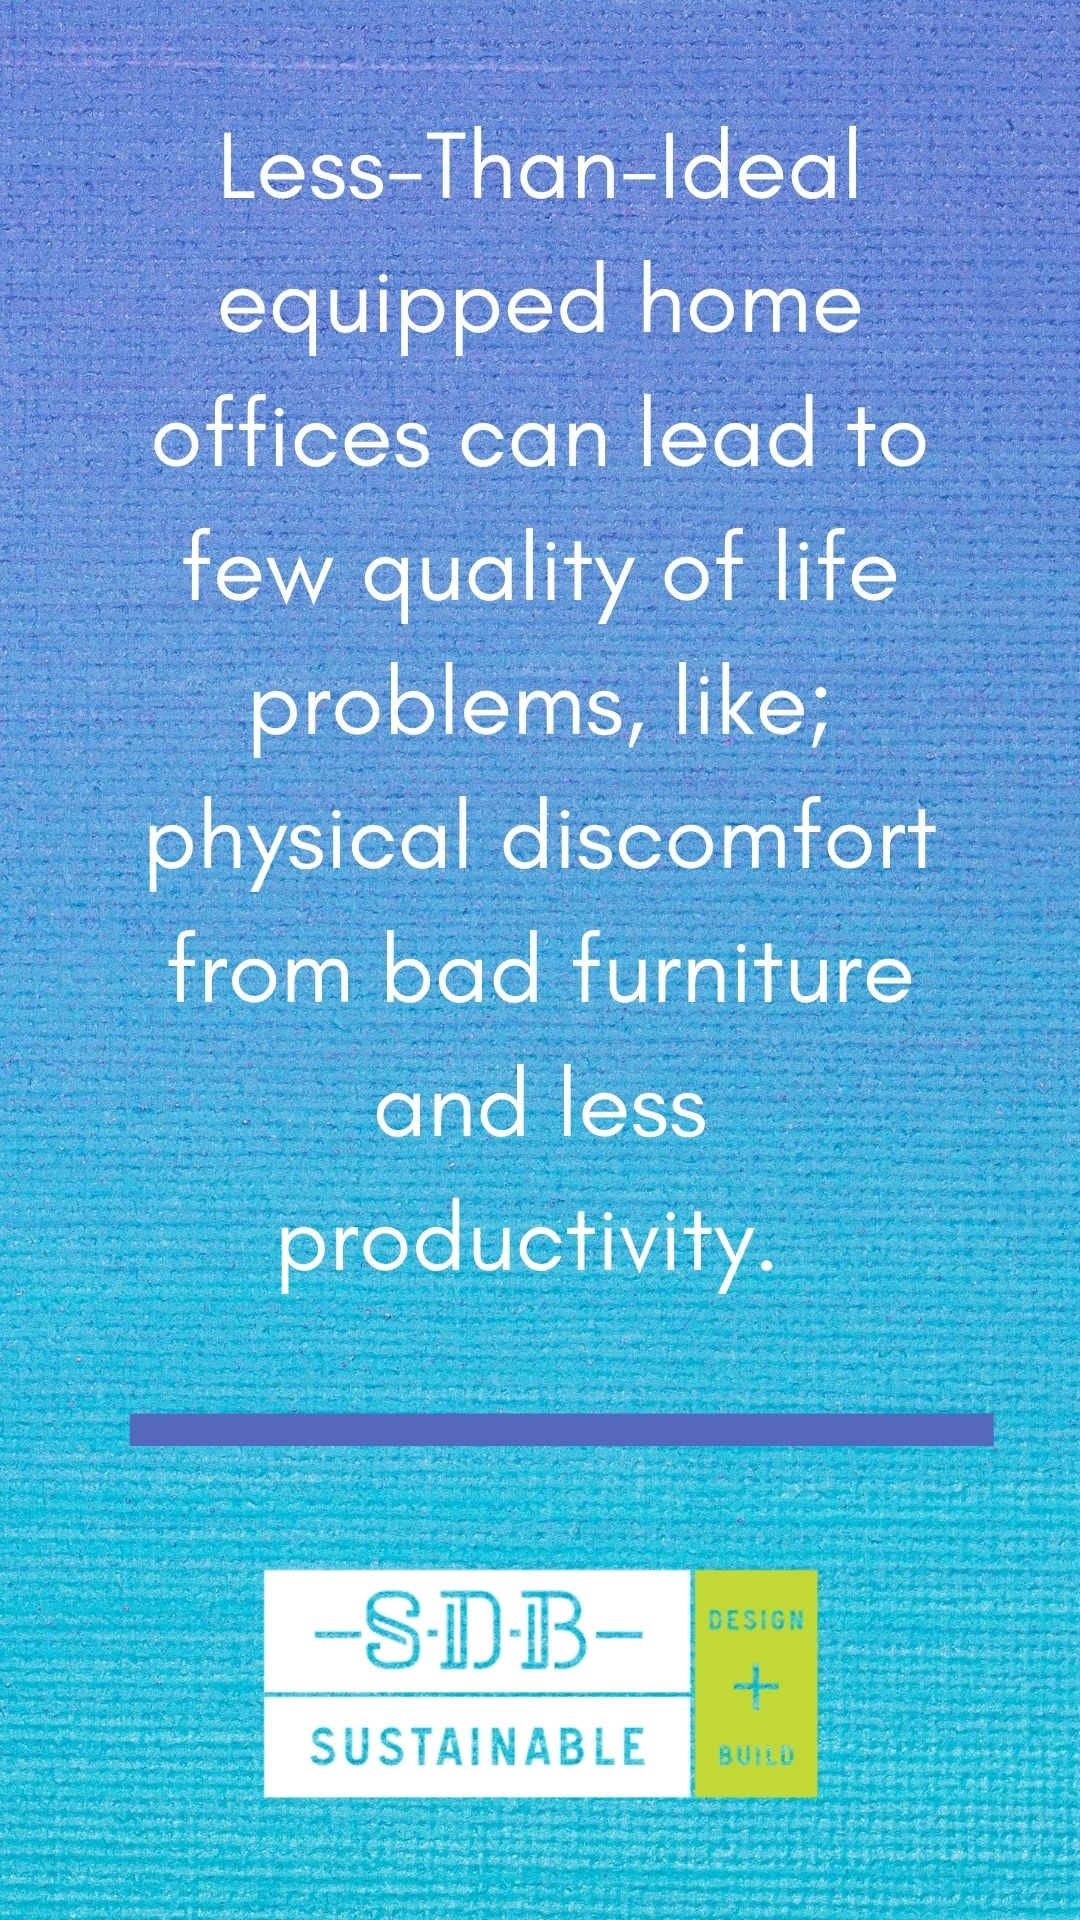 remodel your life sustainable design build home office covid denver productivity